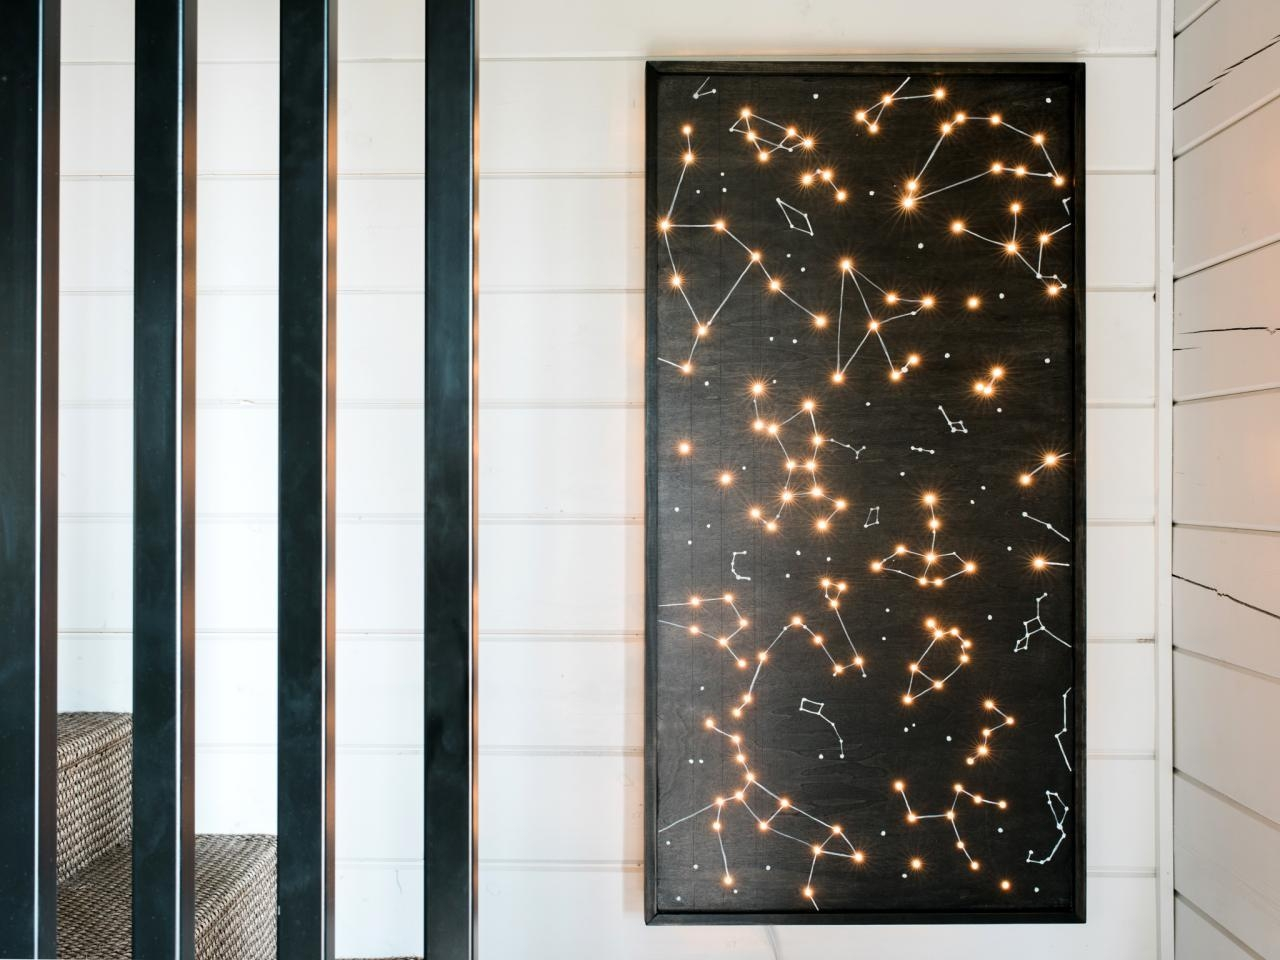 How To Make Illuminated Wall Art | How Tos | Diy With Regard To Wall Art Lighting (View 18 of 20)